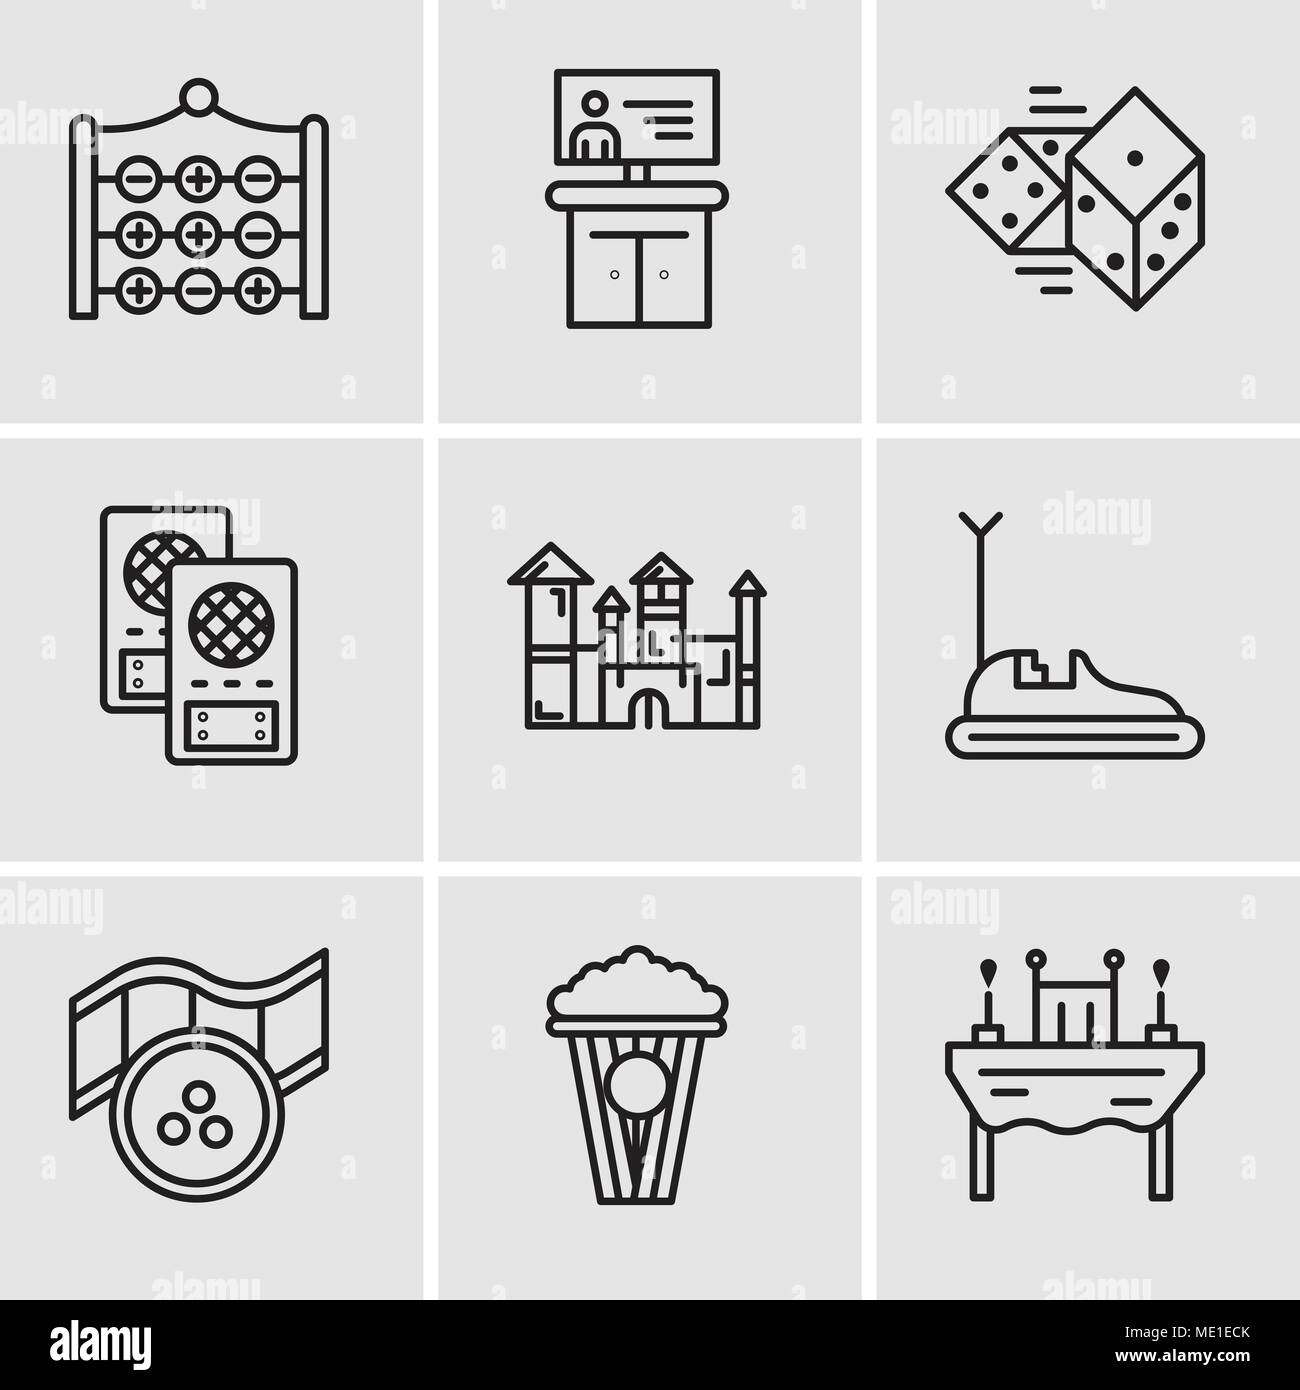 Set Of 9 simple editable icons such as Dinner, Popcorn, Movie, Bumper car, Disneyland, Loudspeaker, Dices, Tv, Tic tac toe, can be used for mobile, we - Stock Image